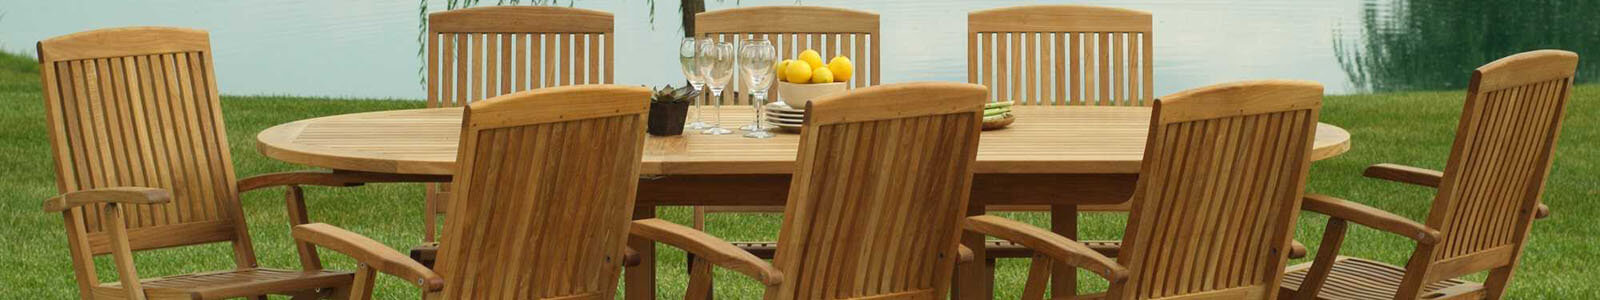 Three Birds Casual: Teak Outdoor Patio Furniture Banner